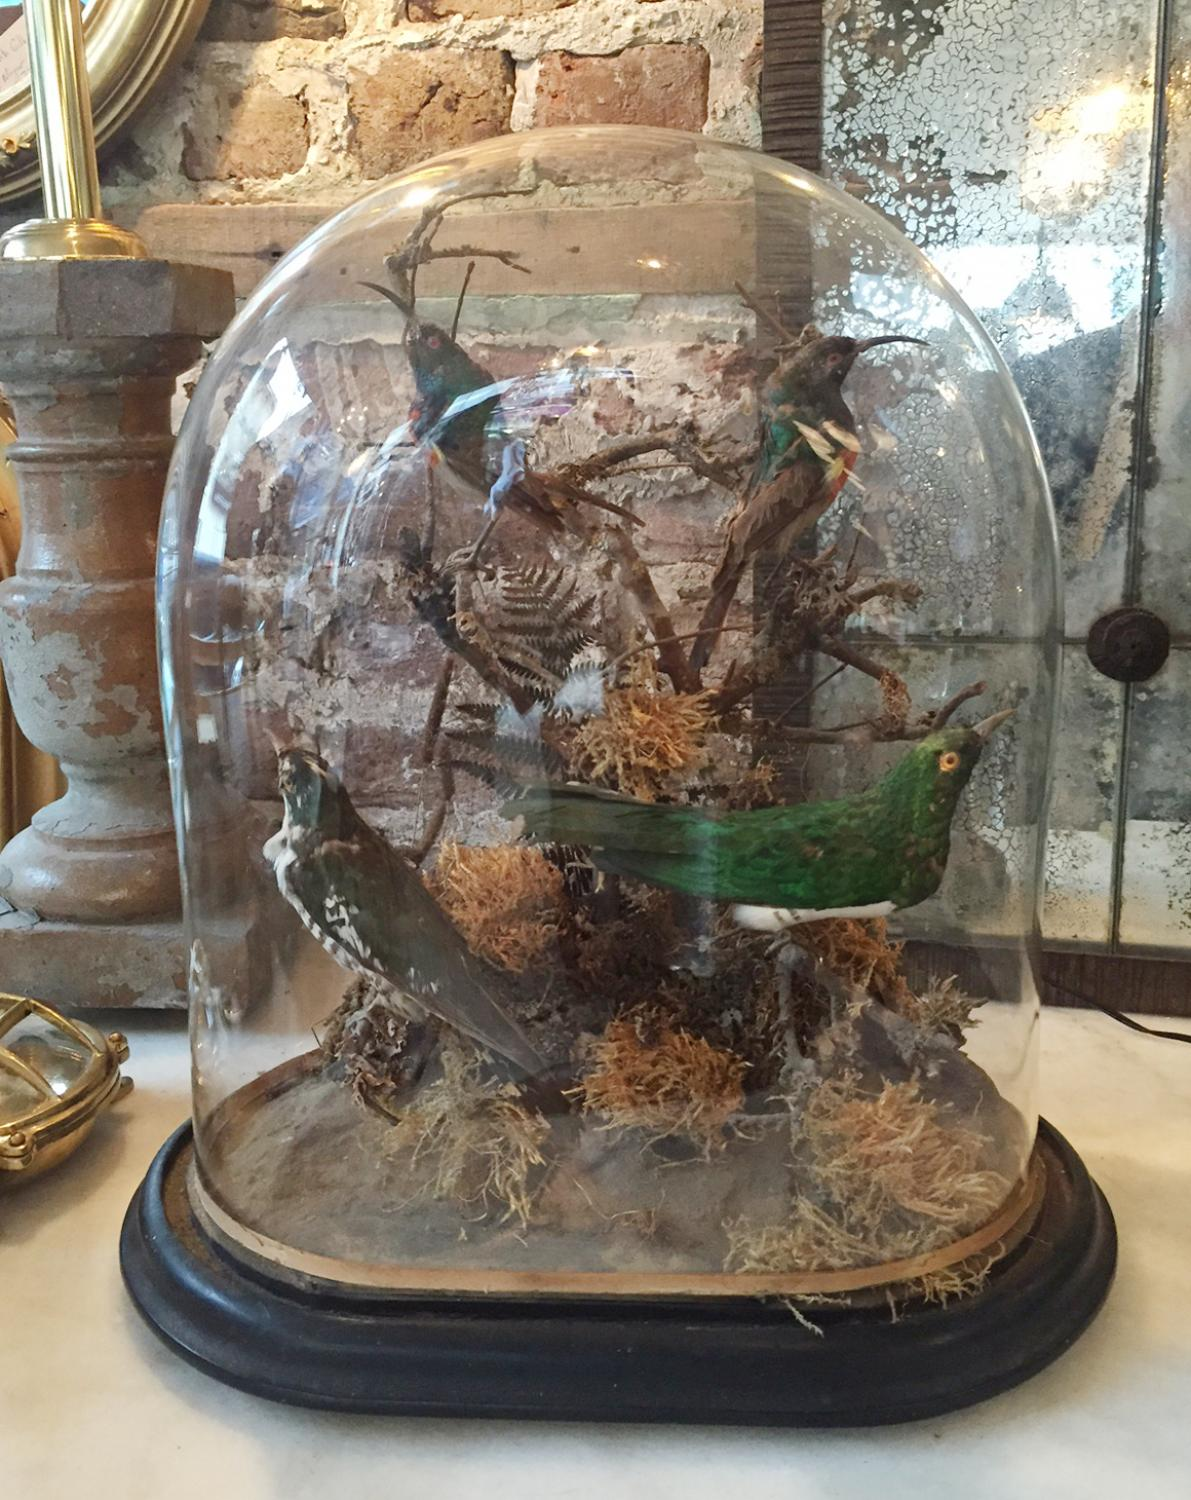 Exotic Birds in Large Glass Dome